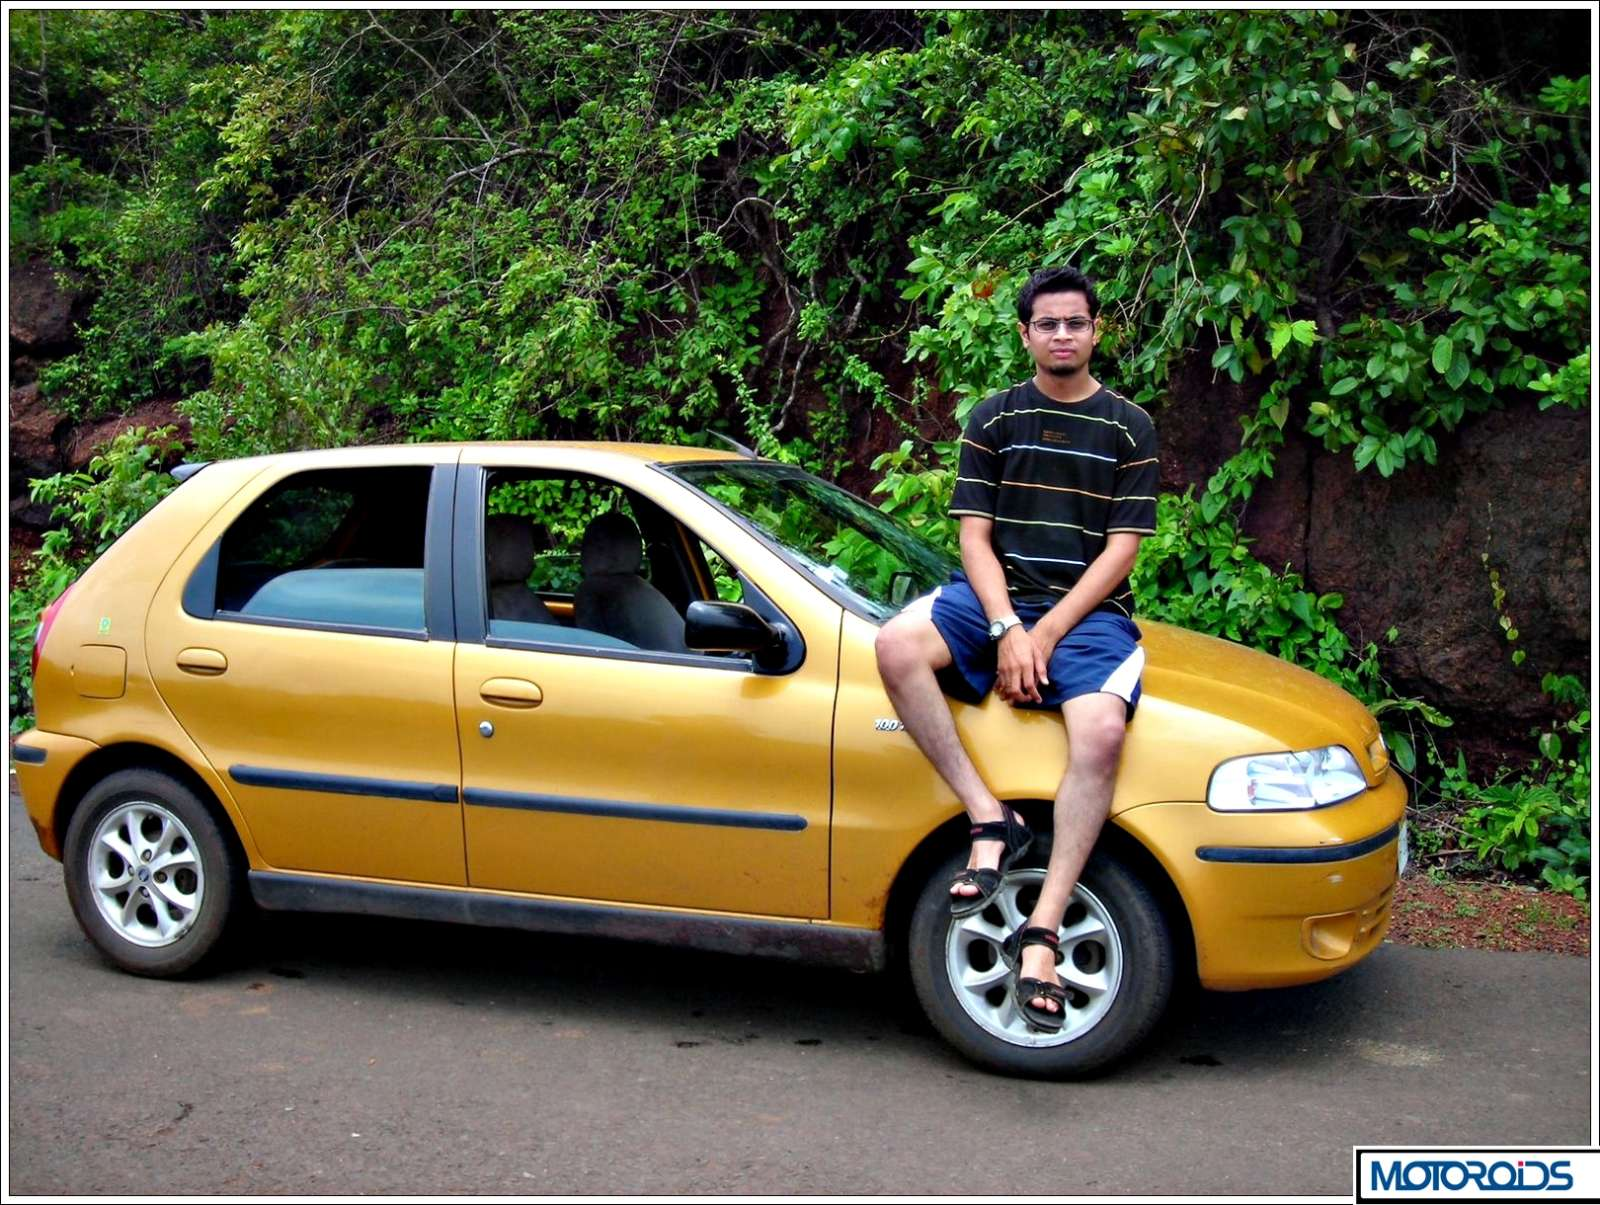 Fiat Palio 1.6 Review (3)